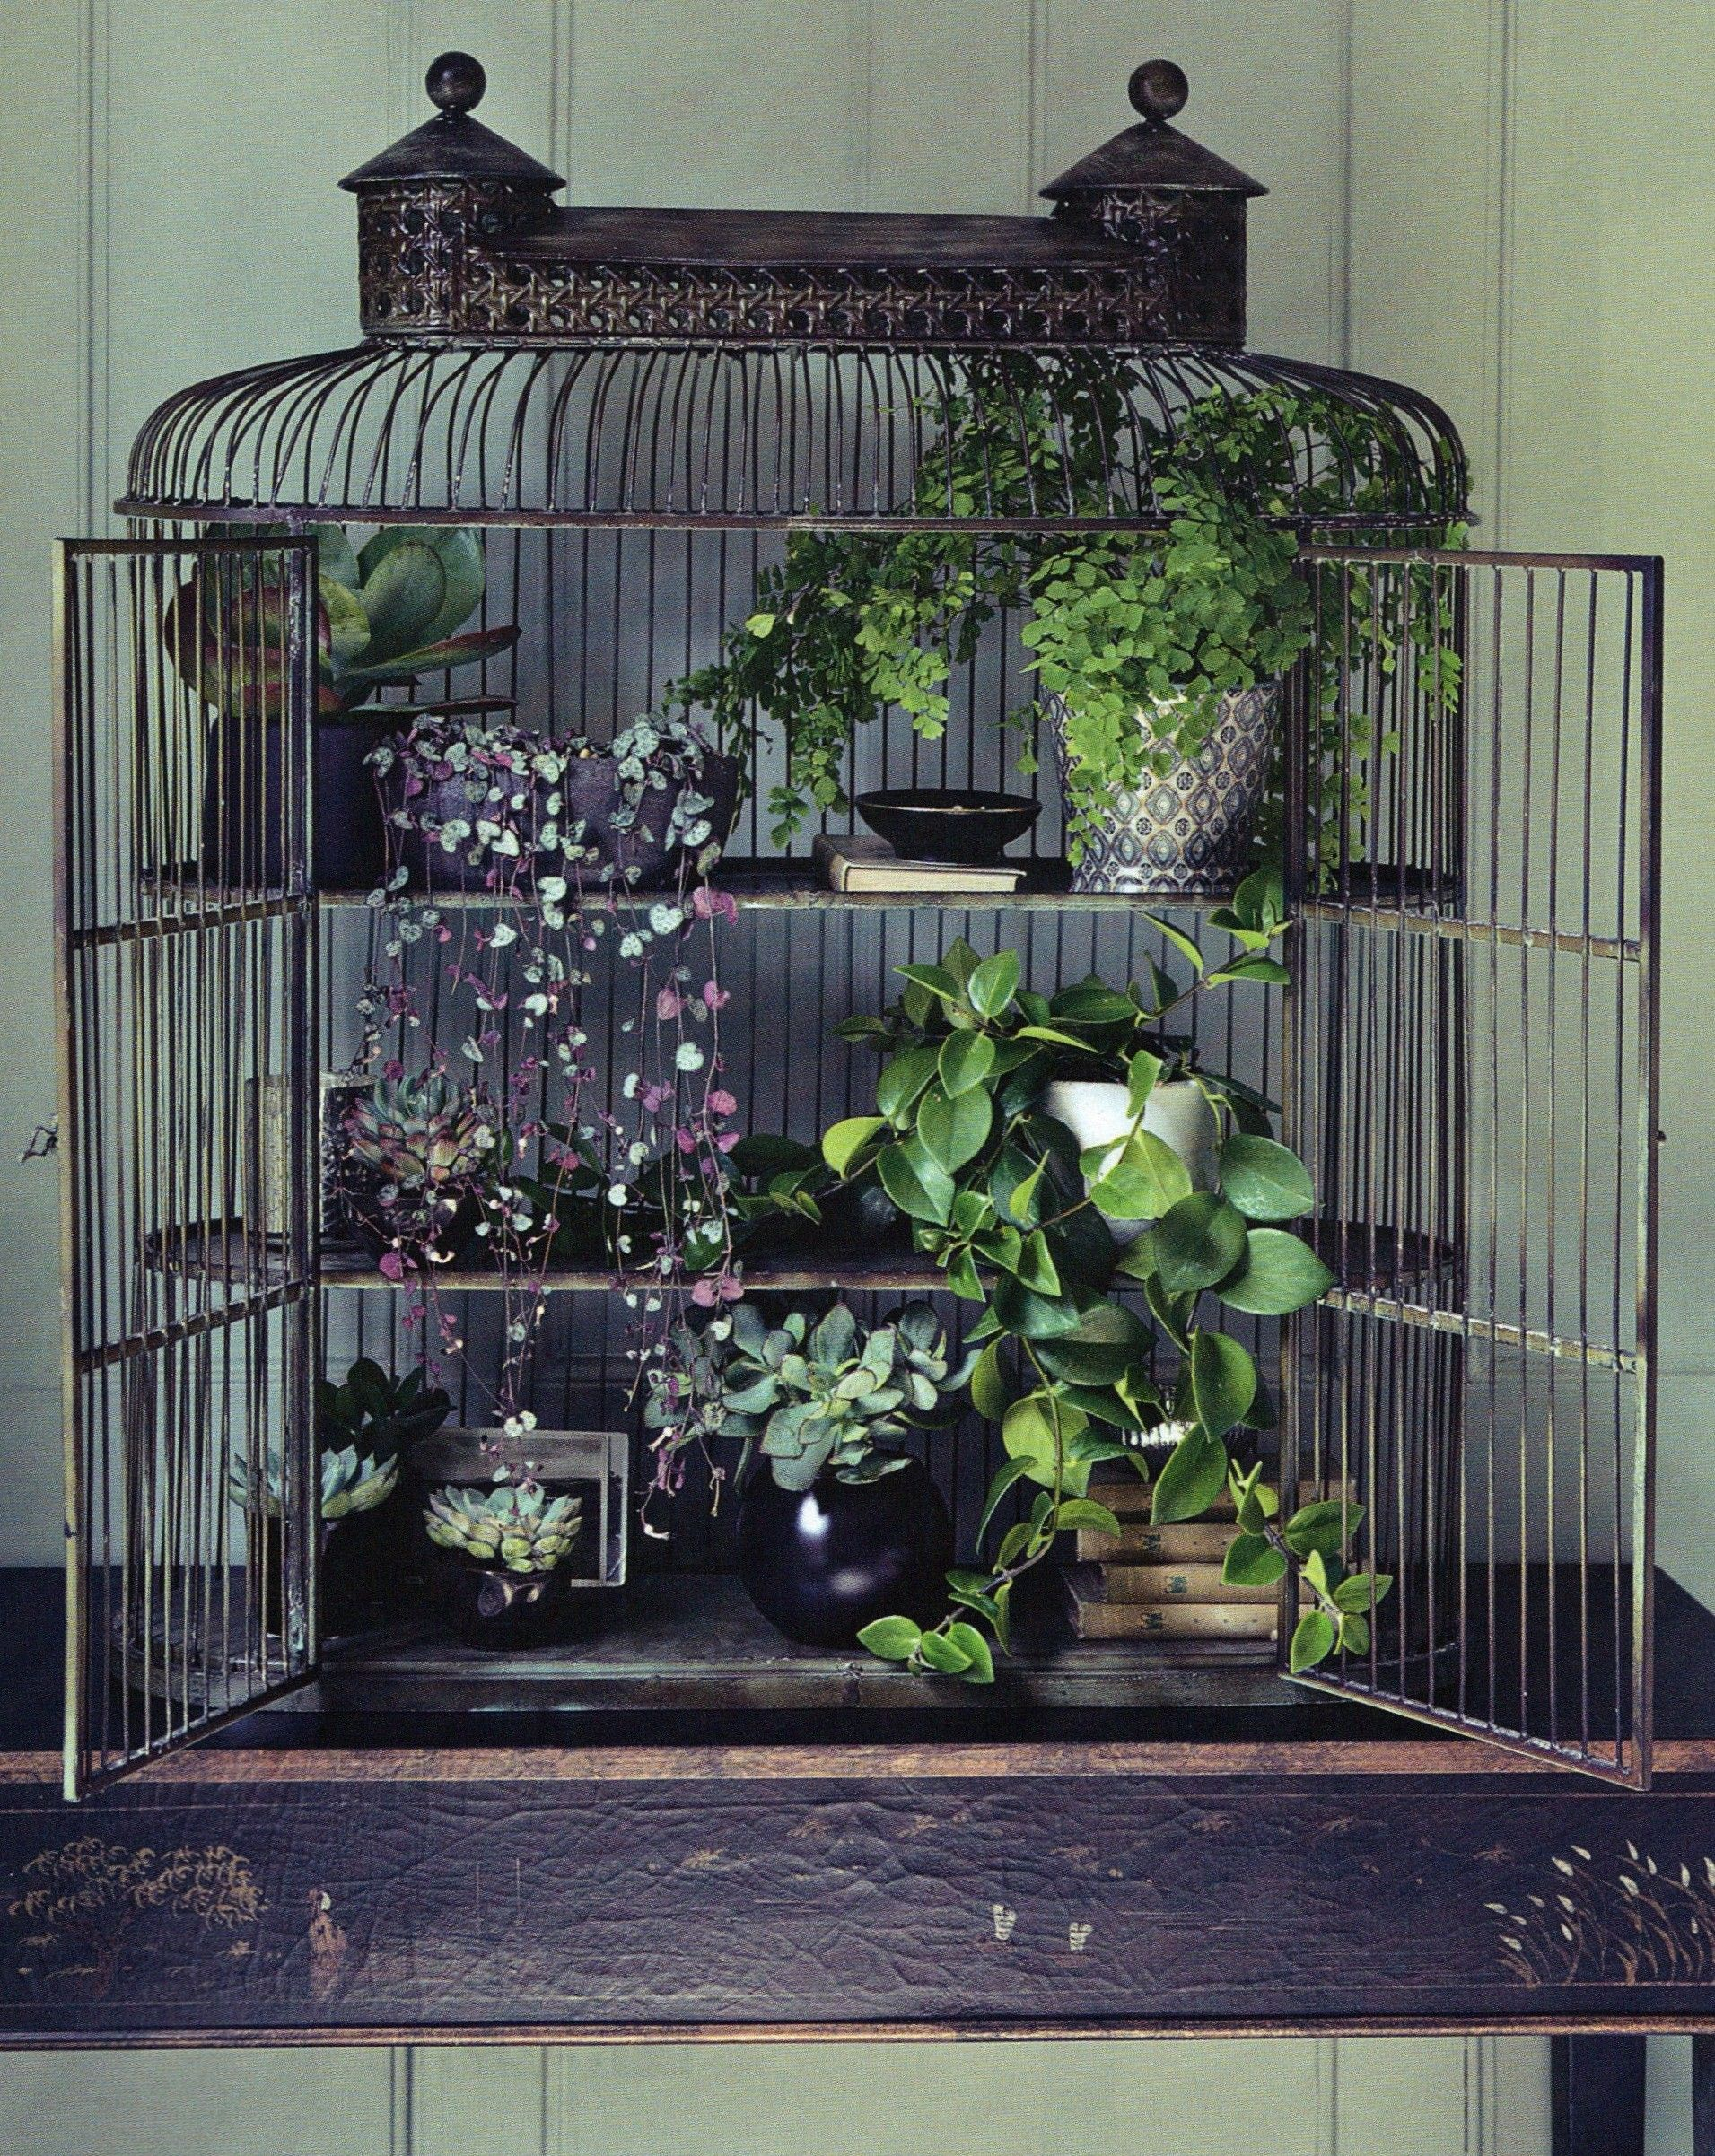 Birdcage Small Plant Display Repurposed And Beautiful Indoor Gardening Idea Plant Display